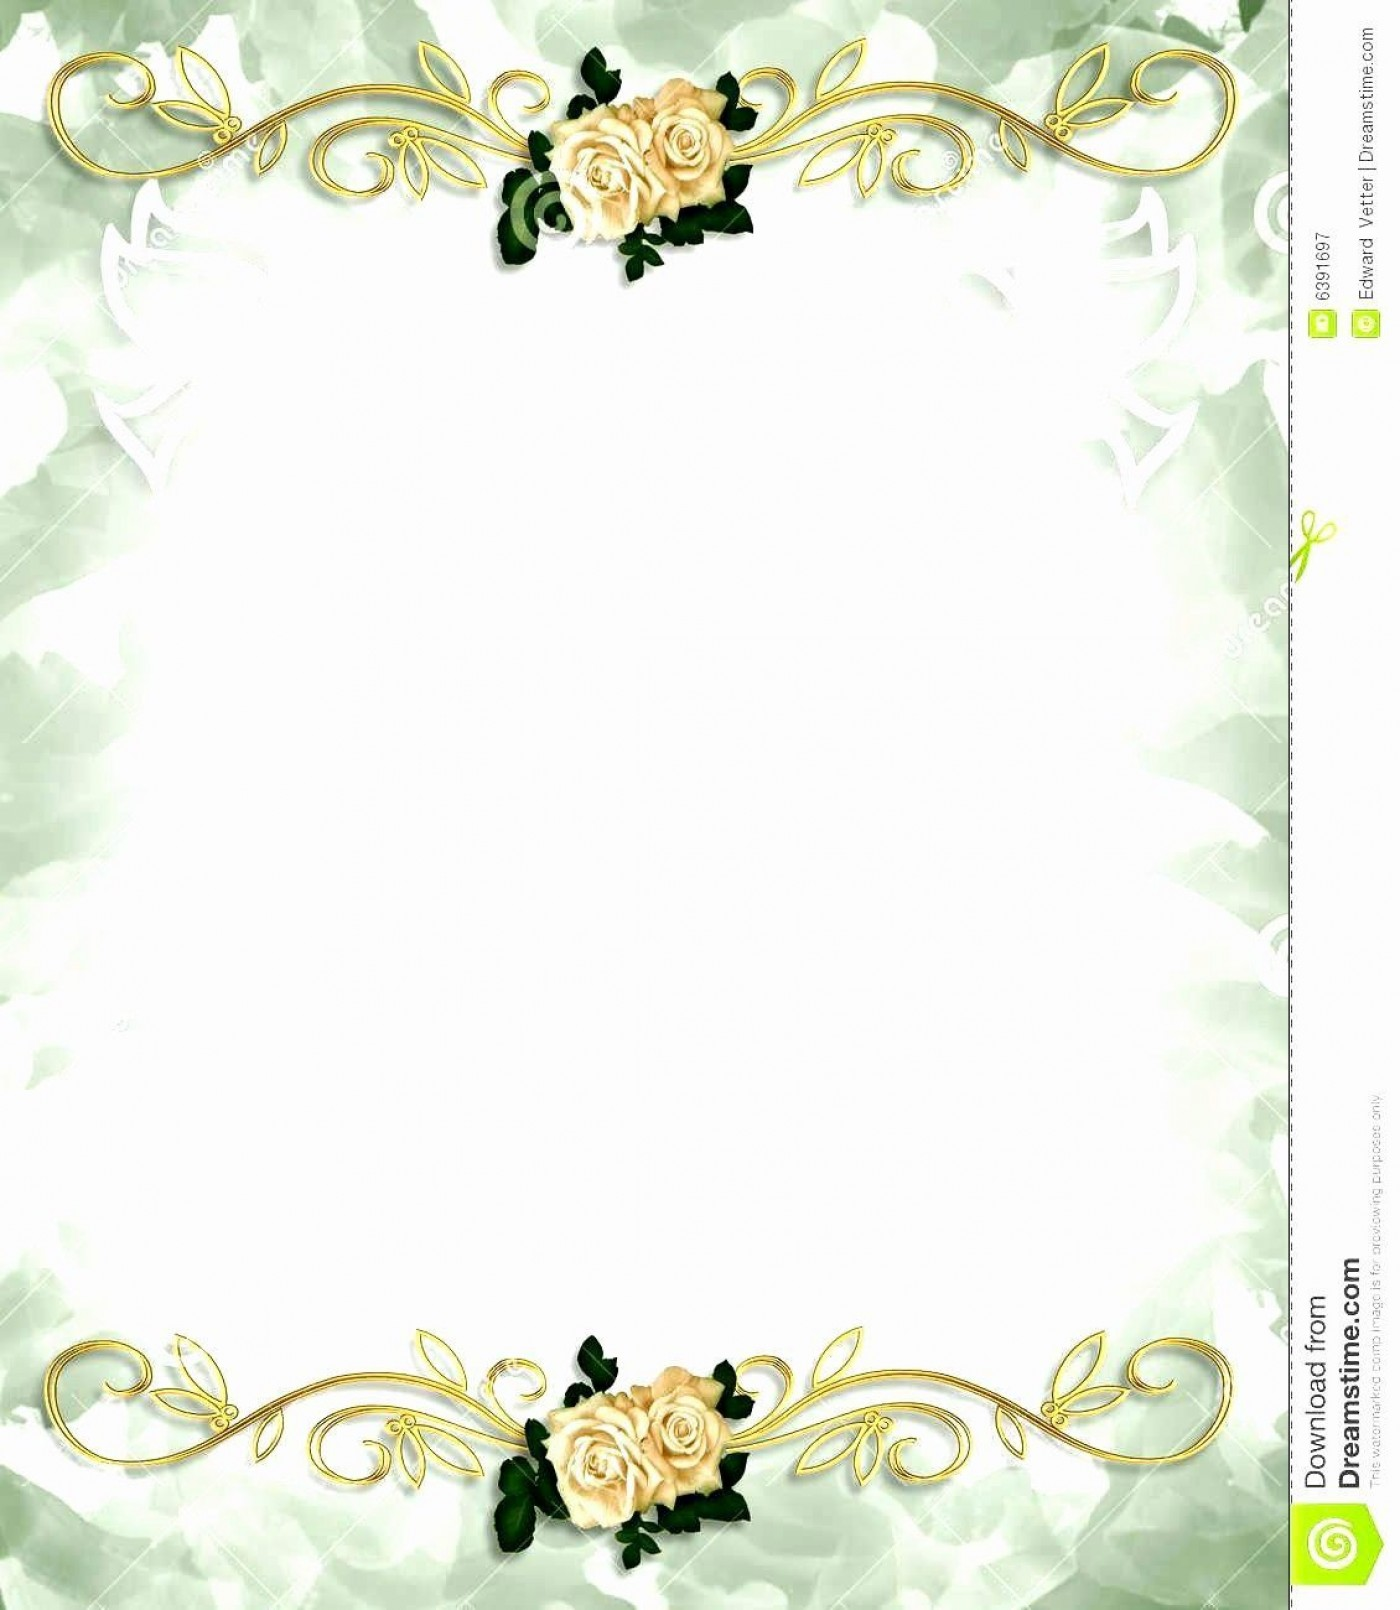 004 Beautiful Free Download Invitation Card Design  Birthday Party Blank Wedding Template Software1400